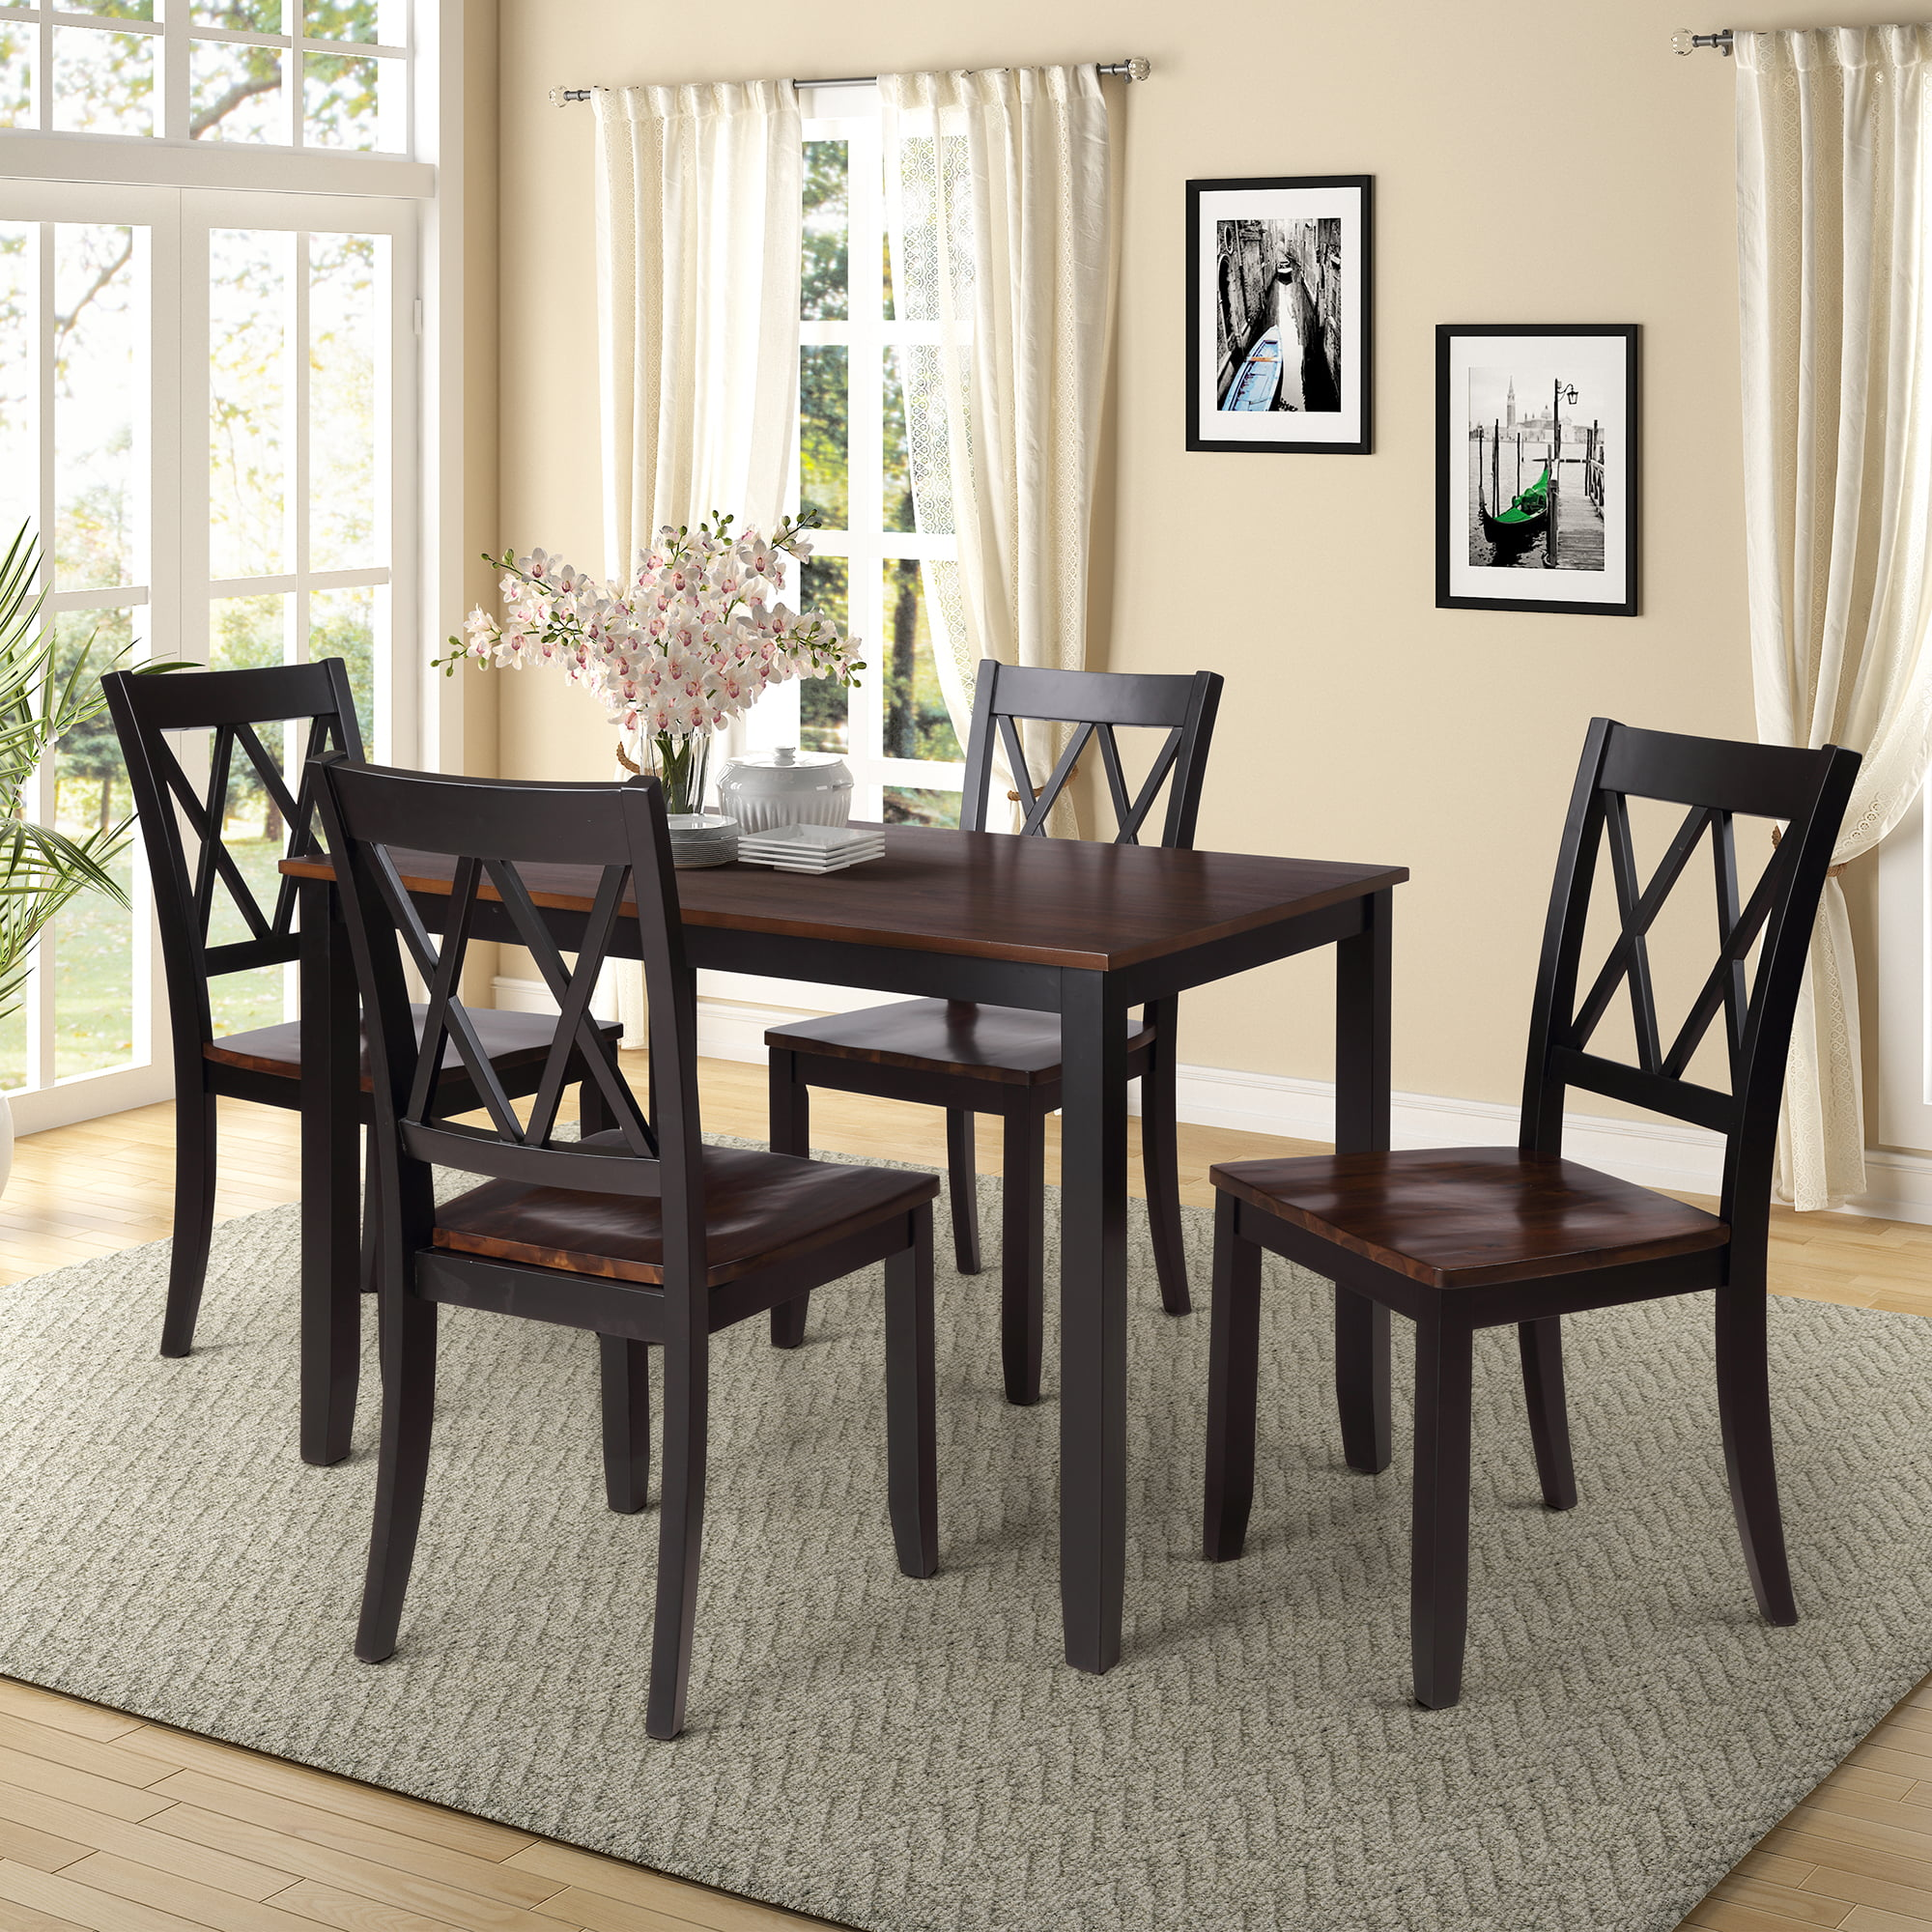 Clearance!Black Dining Table Set for 4, Modern 4 Piece Dining Room Table  Sets with Chairs, Heavy Duty Wooden Rectangular Kitchen Table Set for Home,